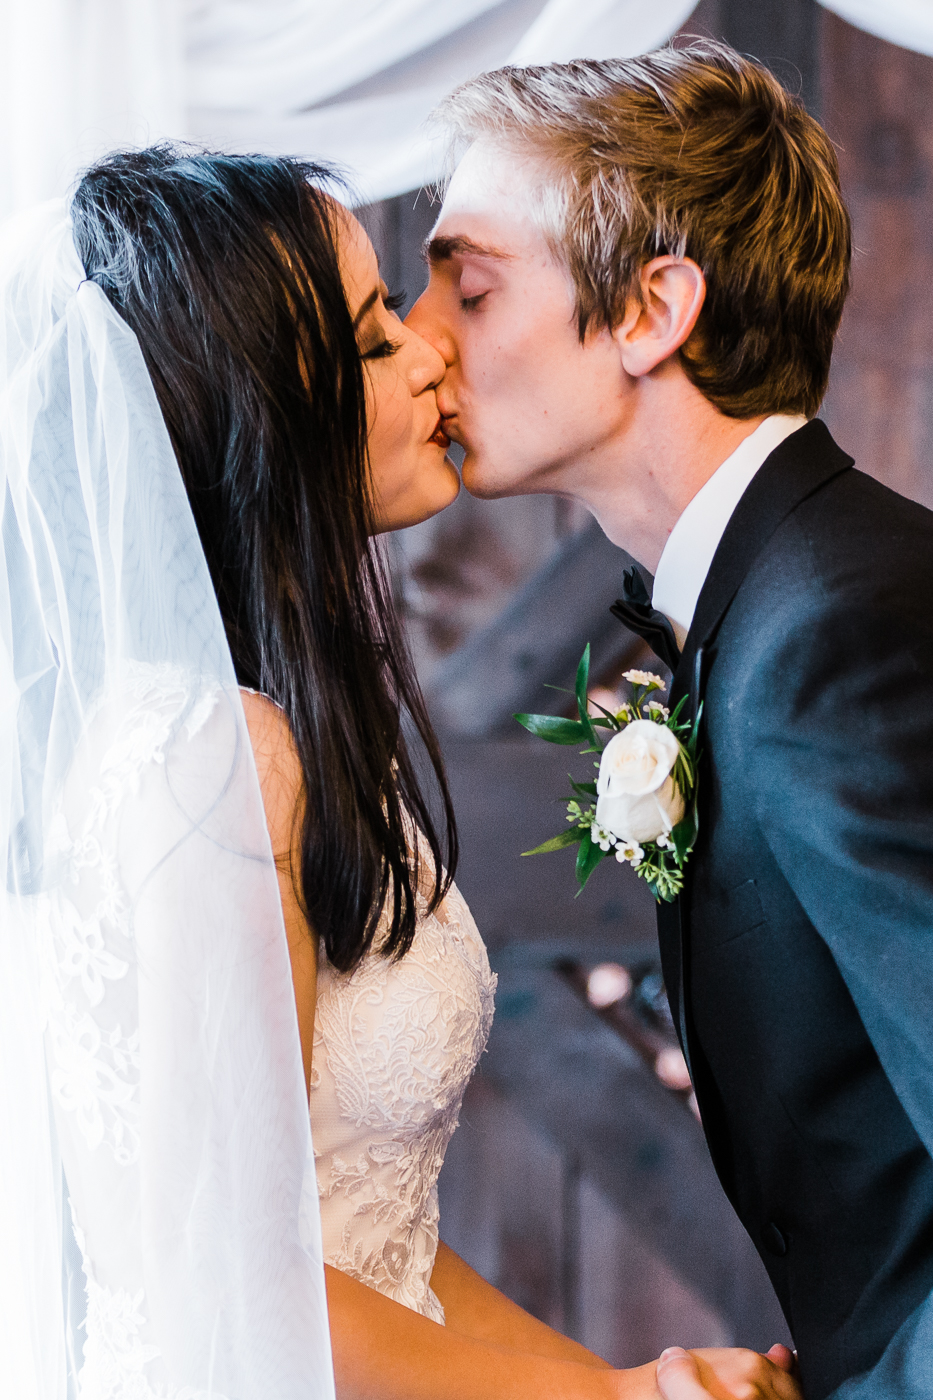 First kiss at intimate Abbotsford wedding.